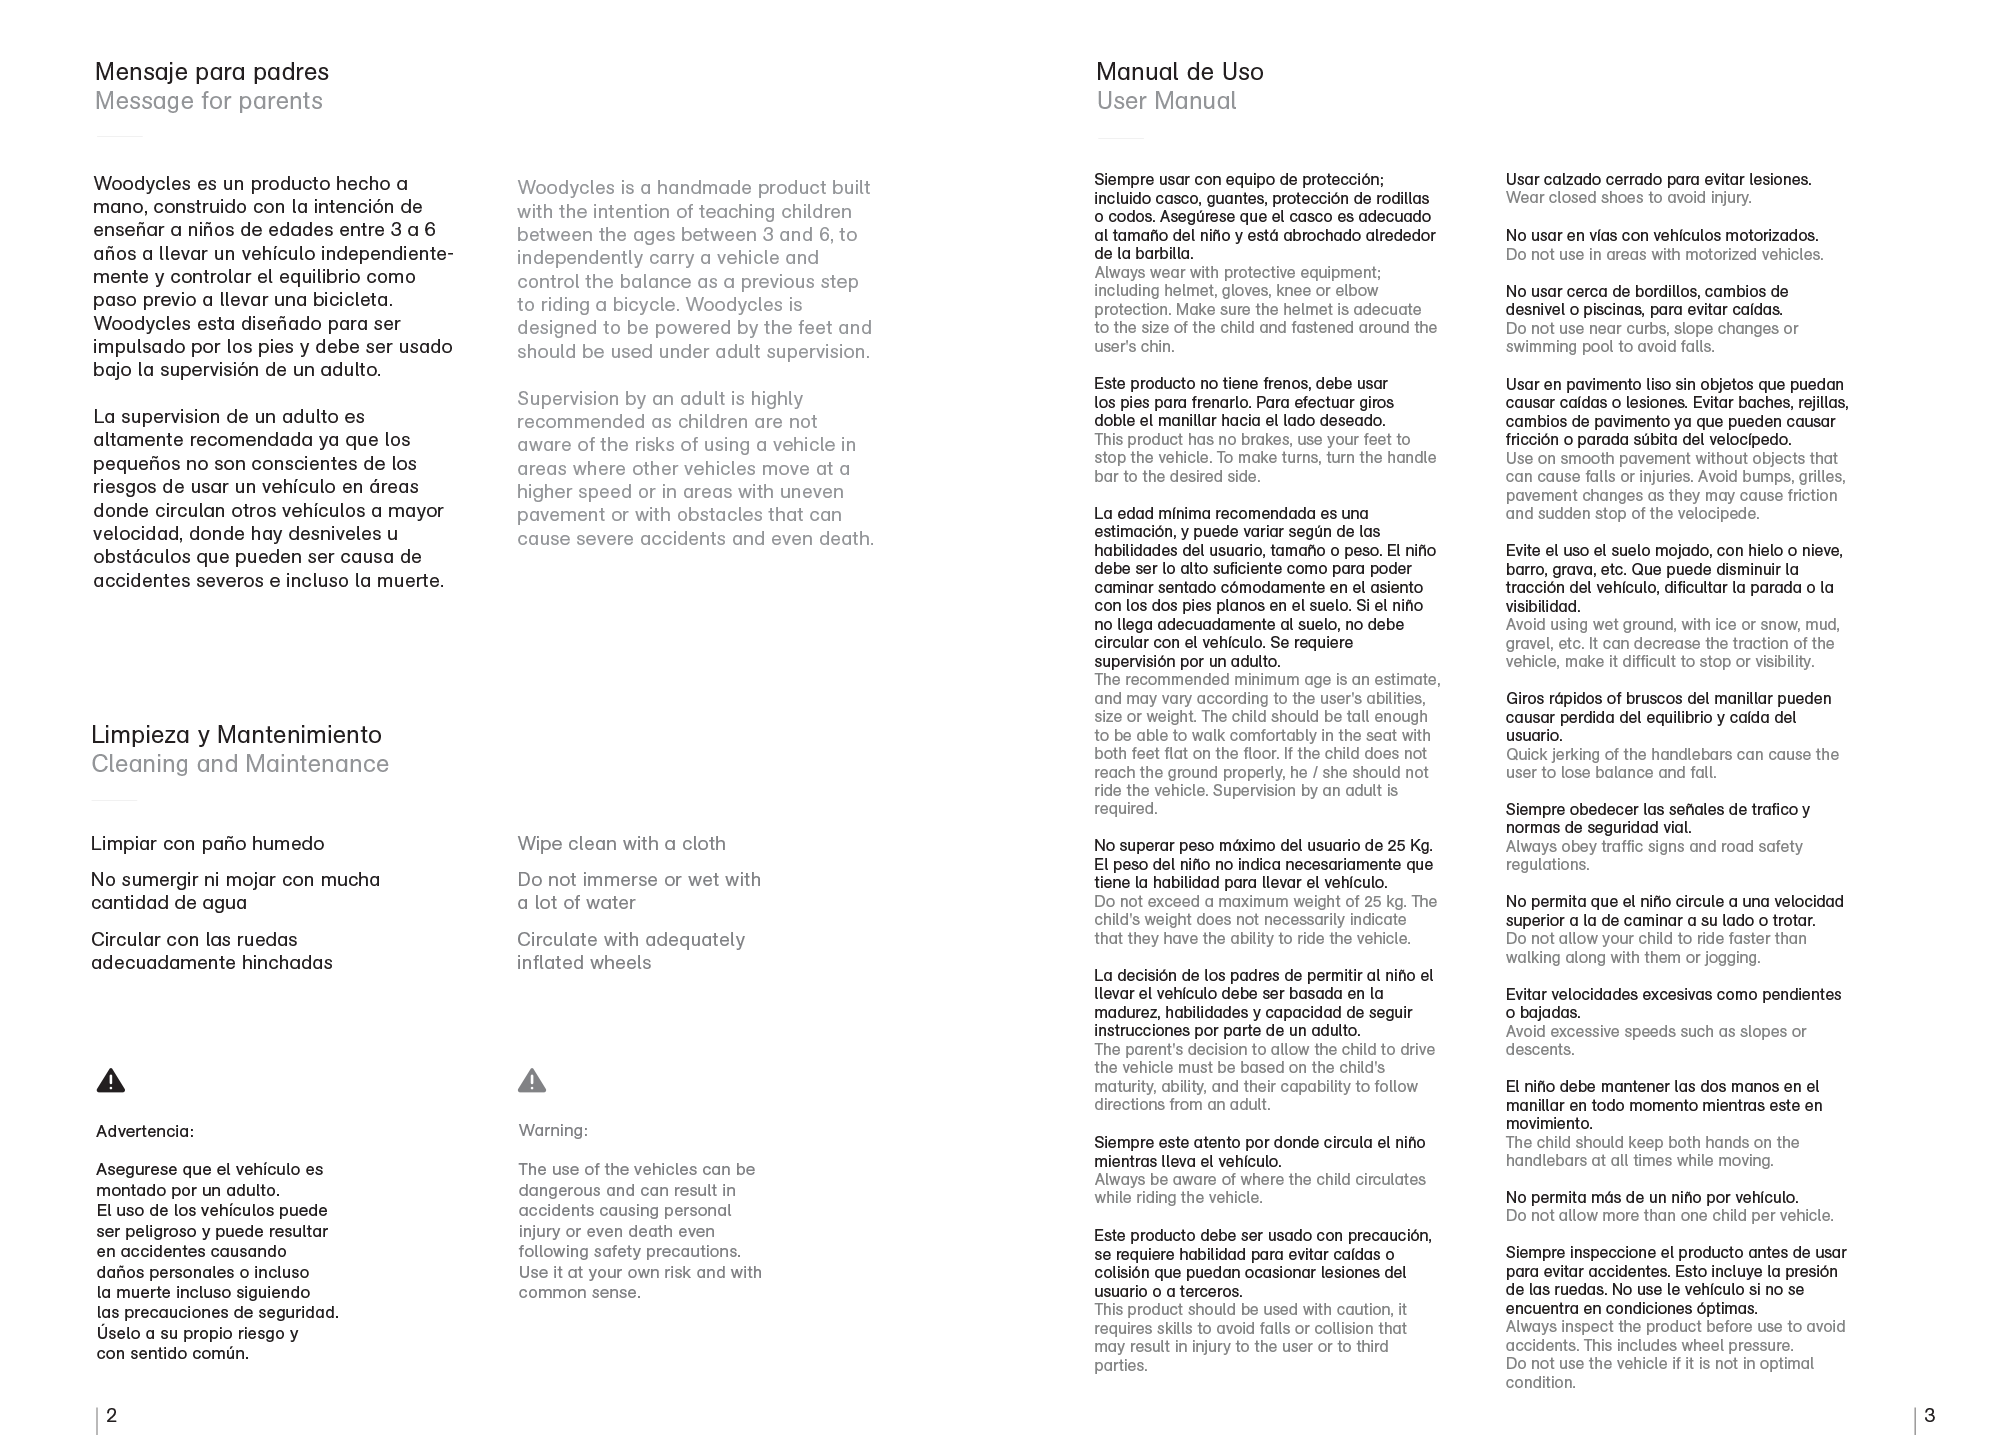 woodycles-instructions2.png